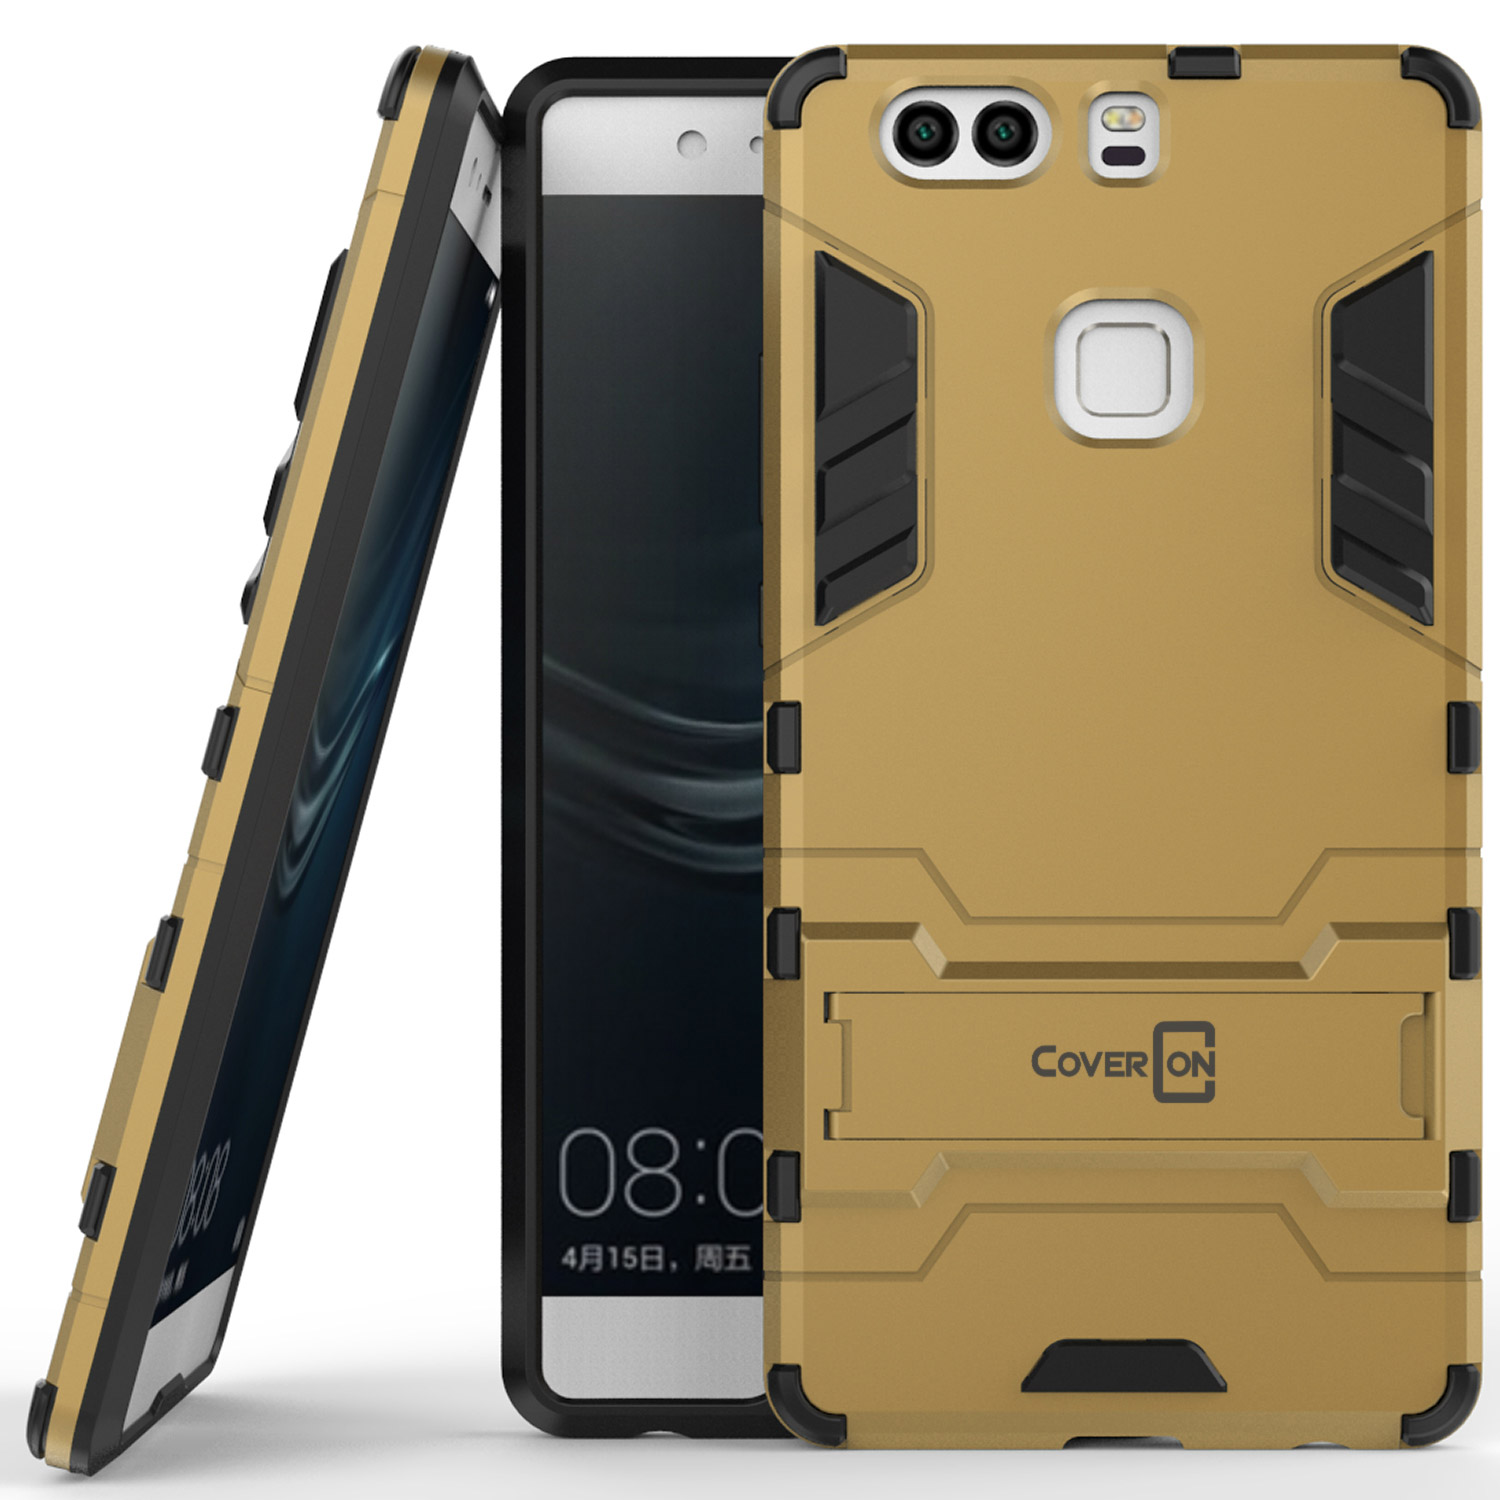 rivenditore all'ingrosso 09d7c 30e9f CoverON Huawei P9 Plus Case, Shadow Armor Series Hybrid Kickstand Phone  Cover